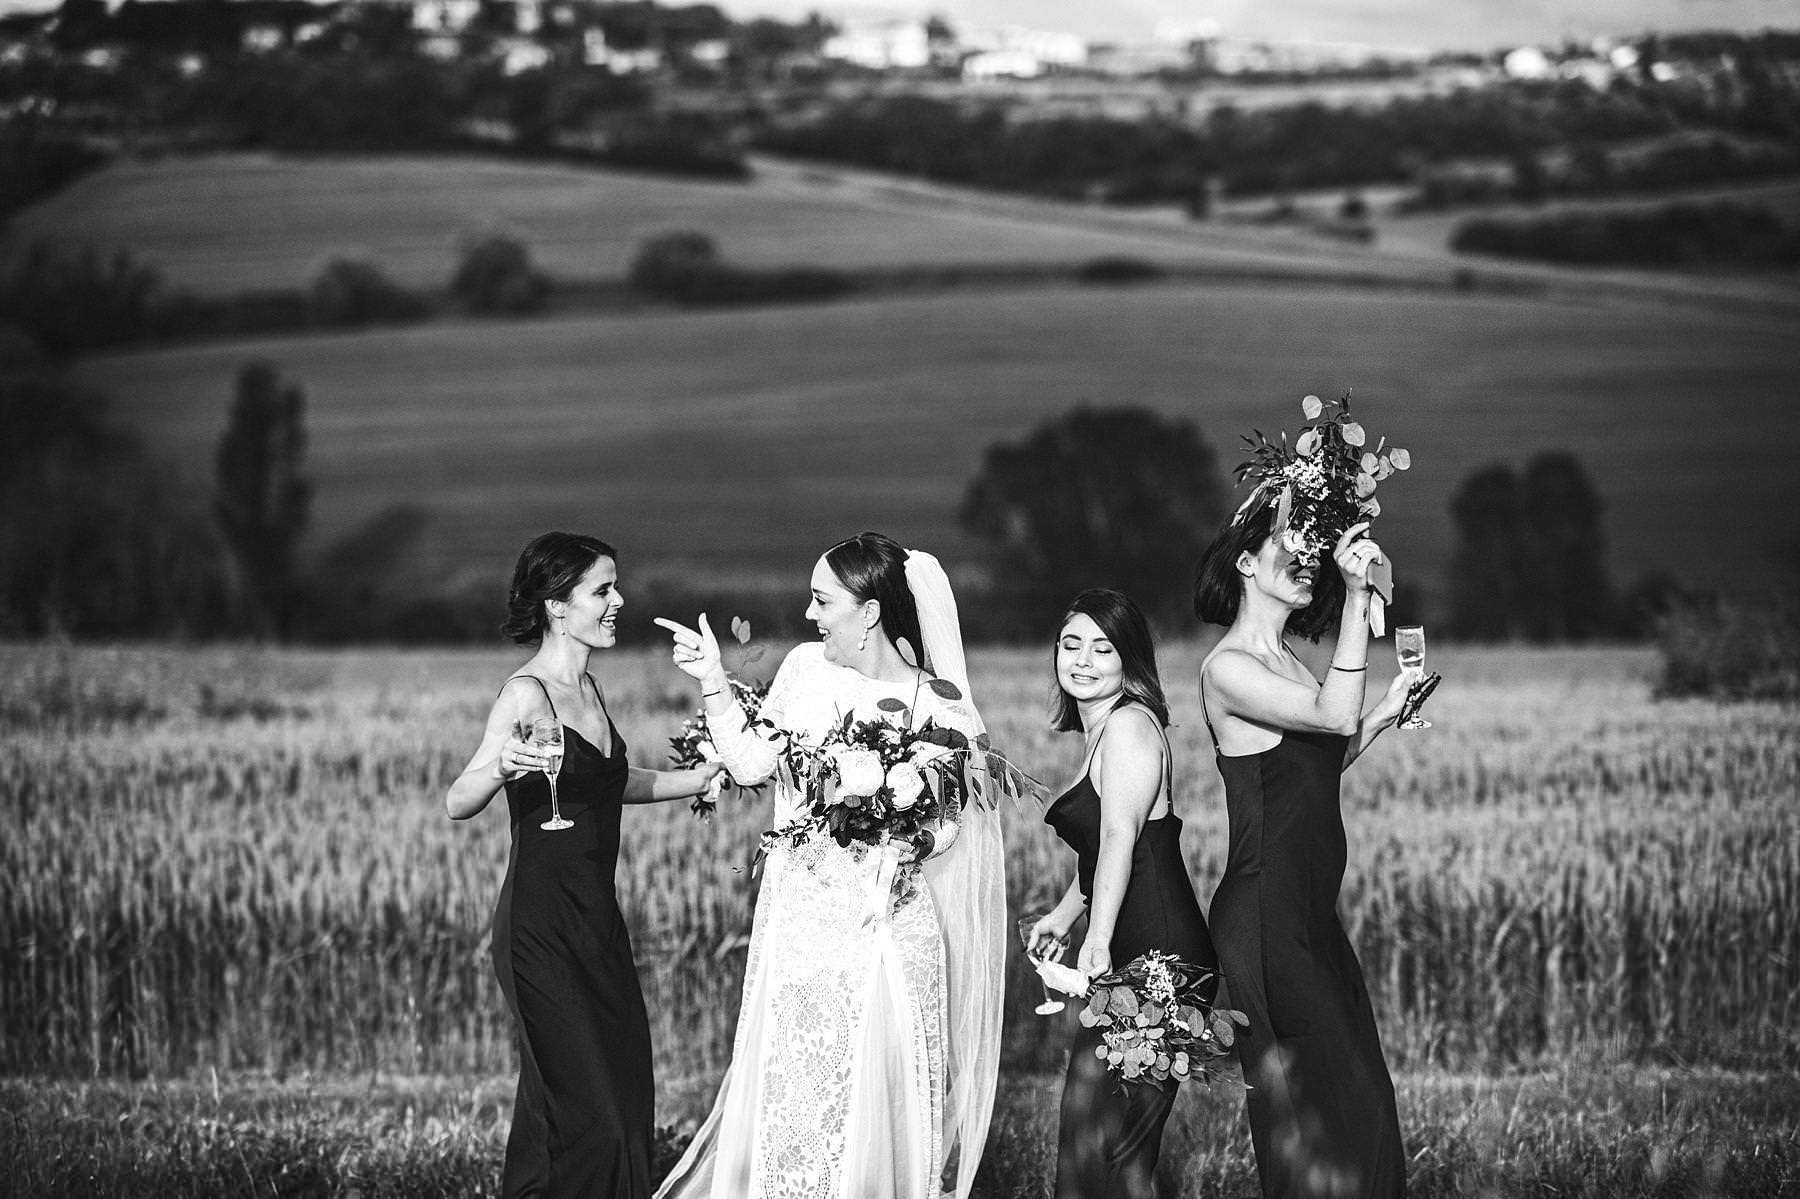 Gorgeous and funny bride and bridesmaid wedding photo with amazing Umbria landscape countryside view near historic Villa l'Antica Posta venue